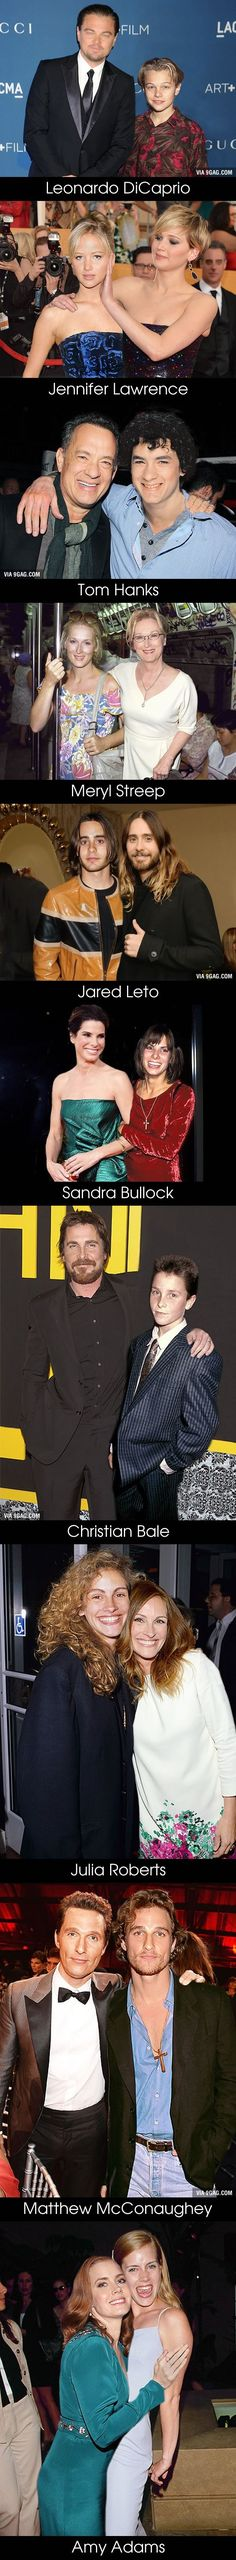 10 #Oscar #Nominees Posing with Their #Younger Selves